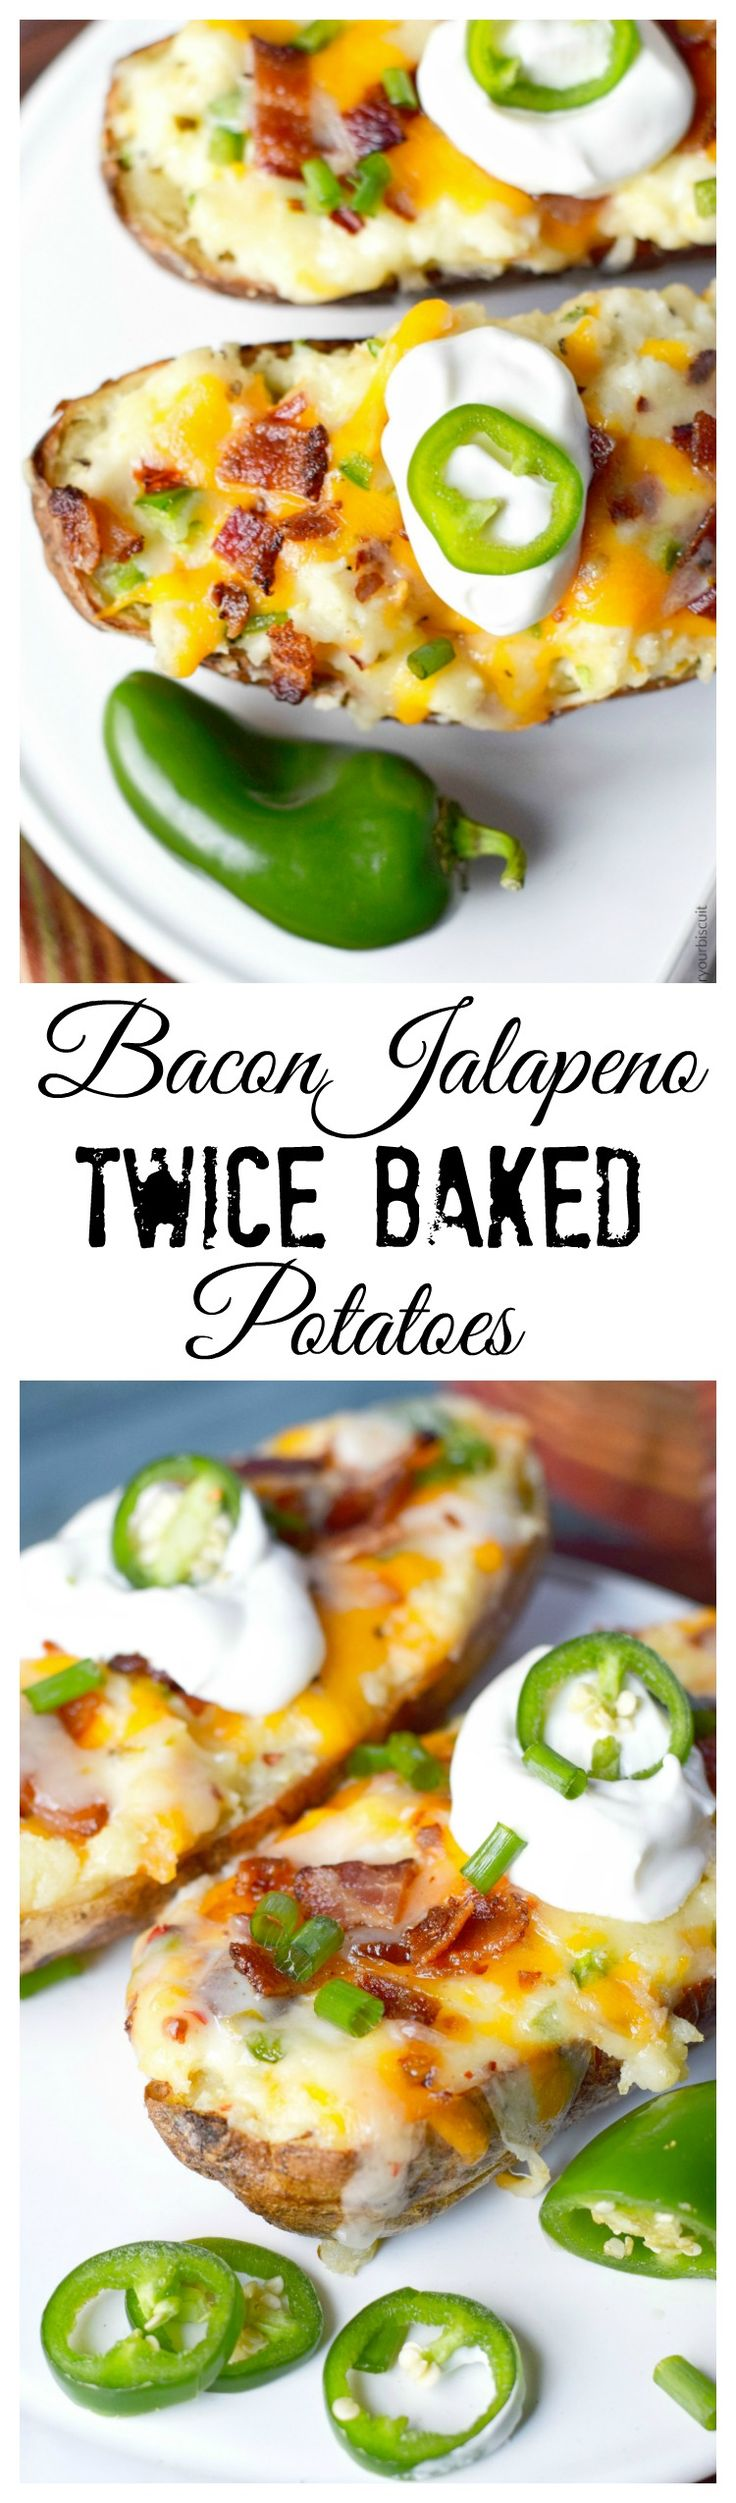 This Bacon Jalapeno Twice Baked Potato recipe is stuffed with cheesy goodness, spicy jalapenos and crispy bacon.